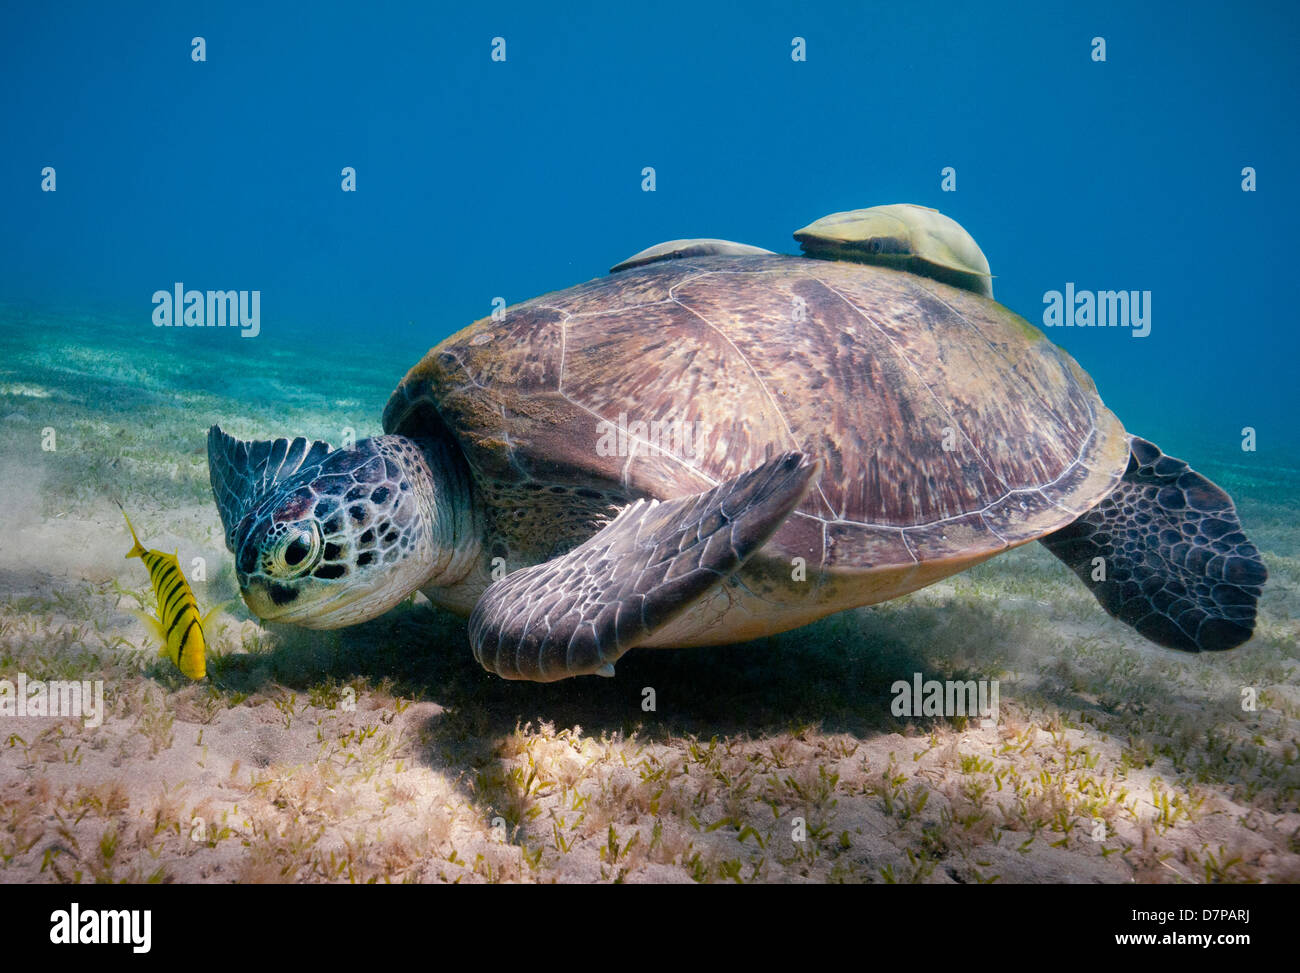 A Green Turtle (Chelonia Mydas) feeds on the sea grass in the sheltered bay at Marsa Abu Dabab in the Southern Egyptian Stock Photo